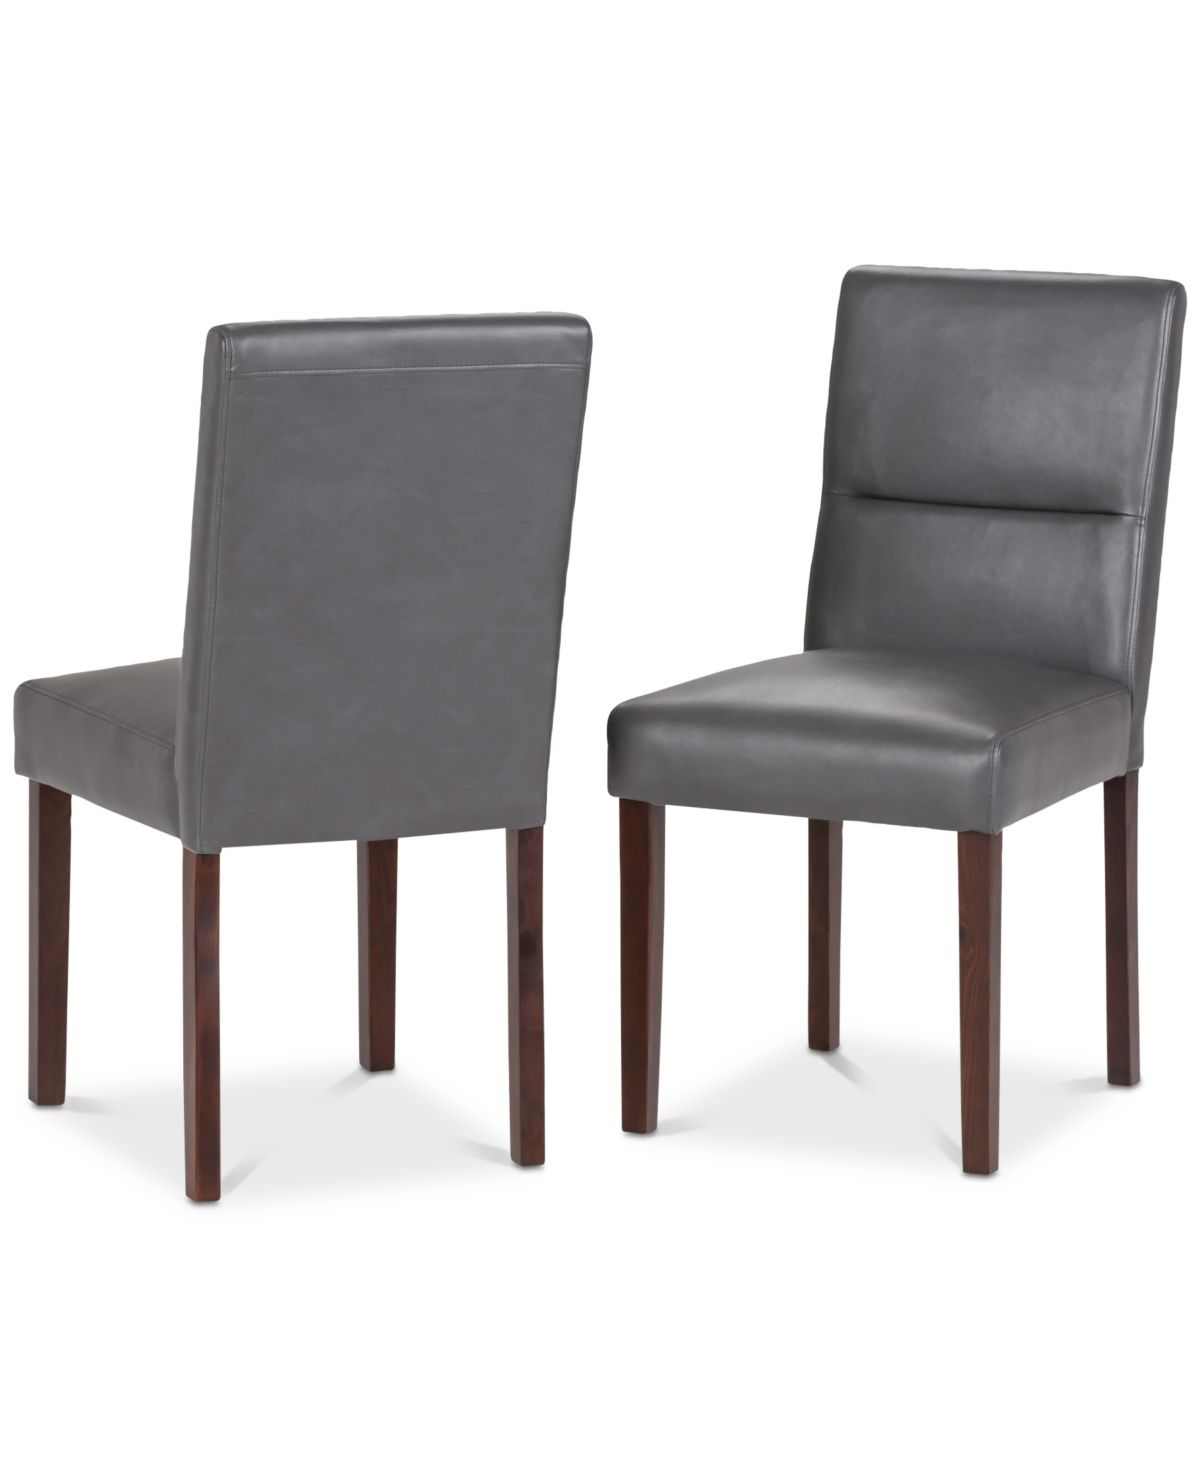 Simpli Home Norvan Dining Chair Set Of 2 Reviews Furniture Macy S Dining Chairs Dining Chair Set Simpli Home